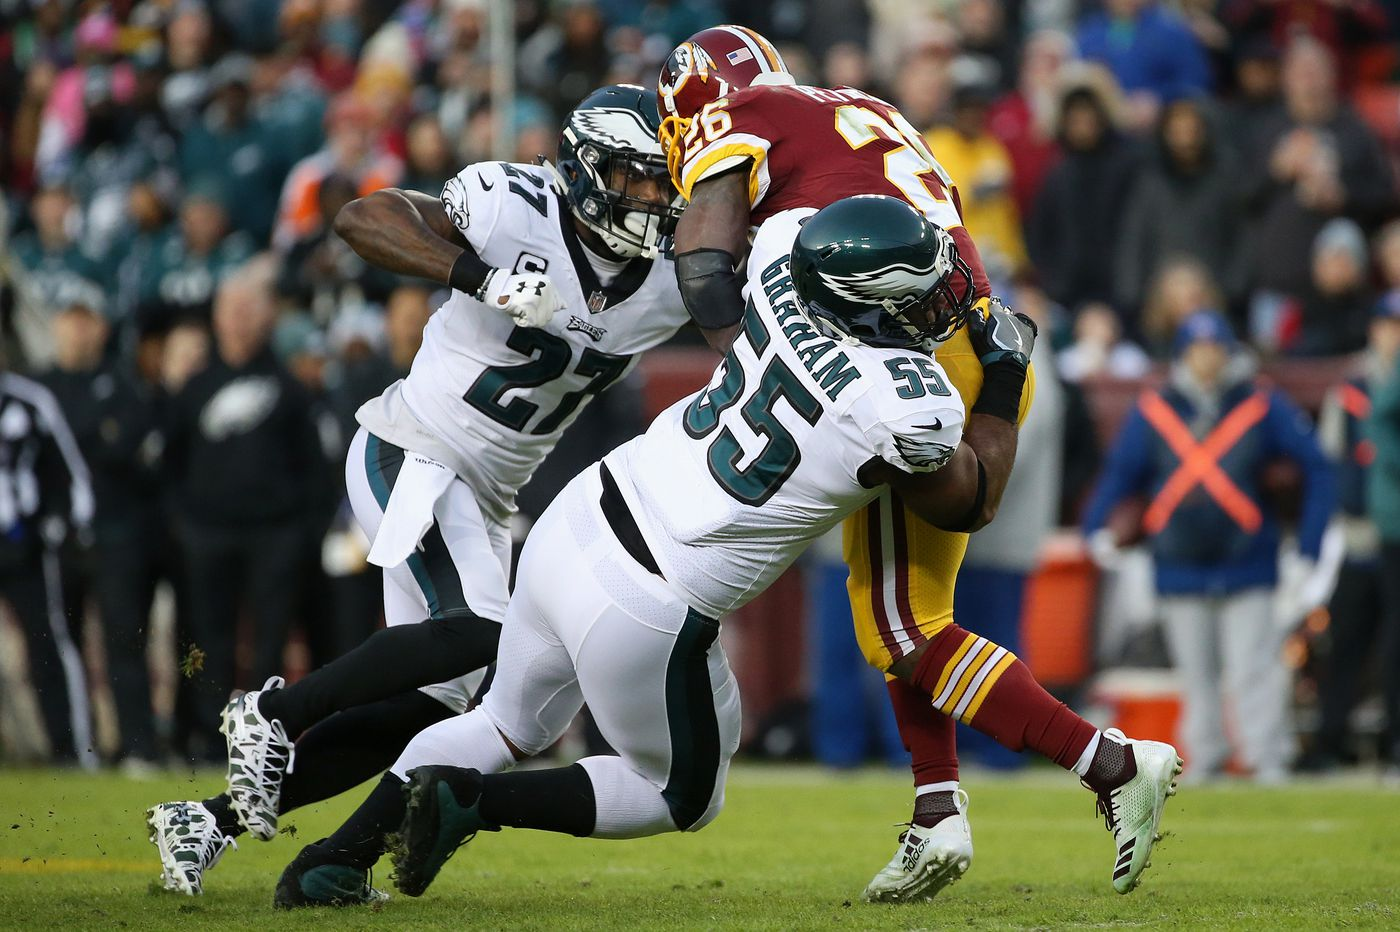 Redskins' Jay Gruden says early downs key for his offense against Eagles | Early Birds